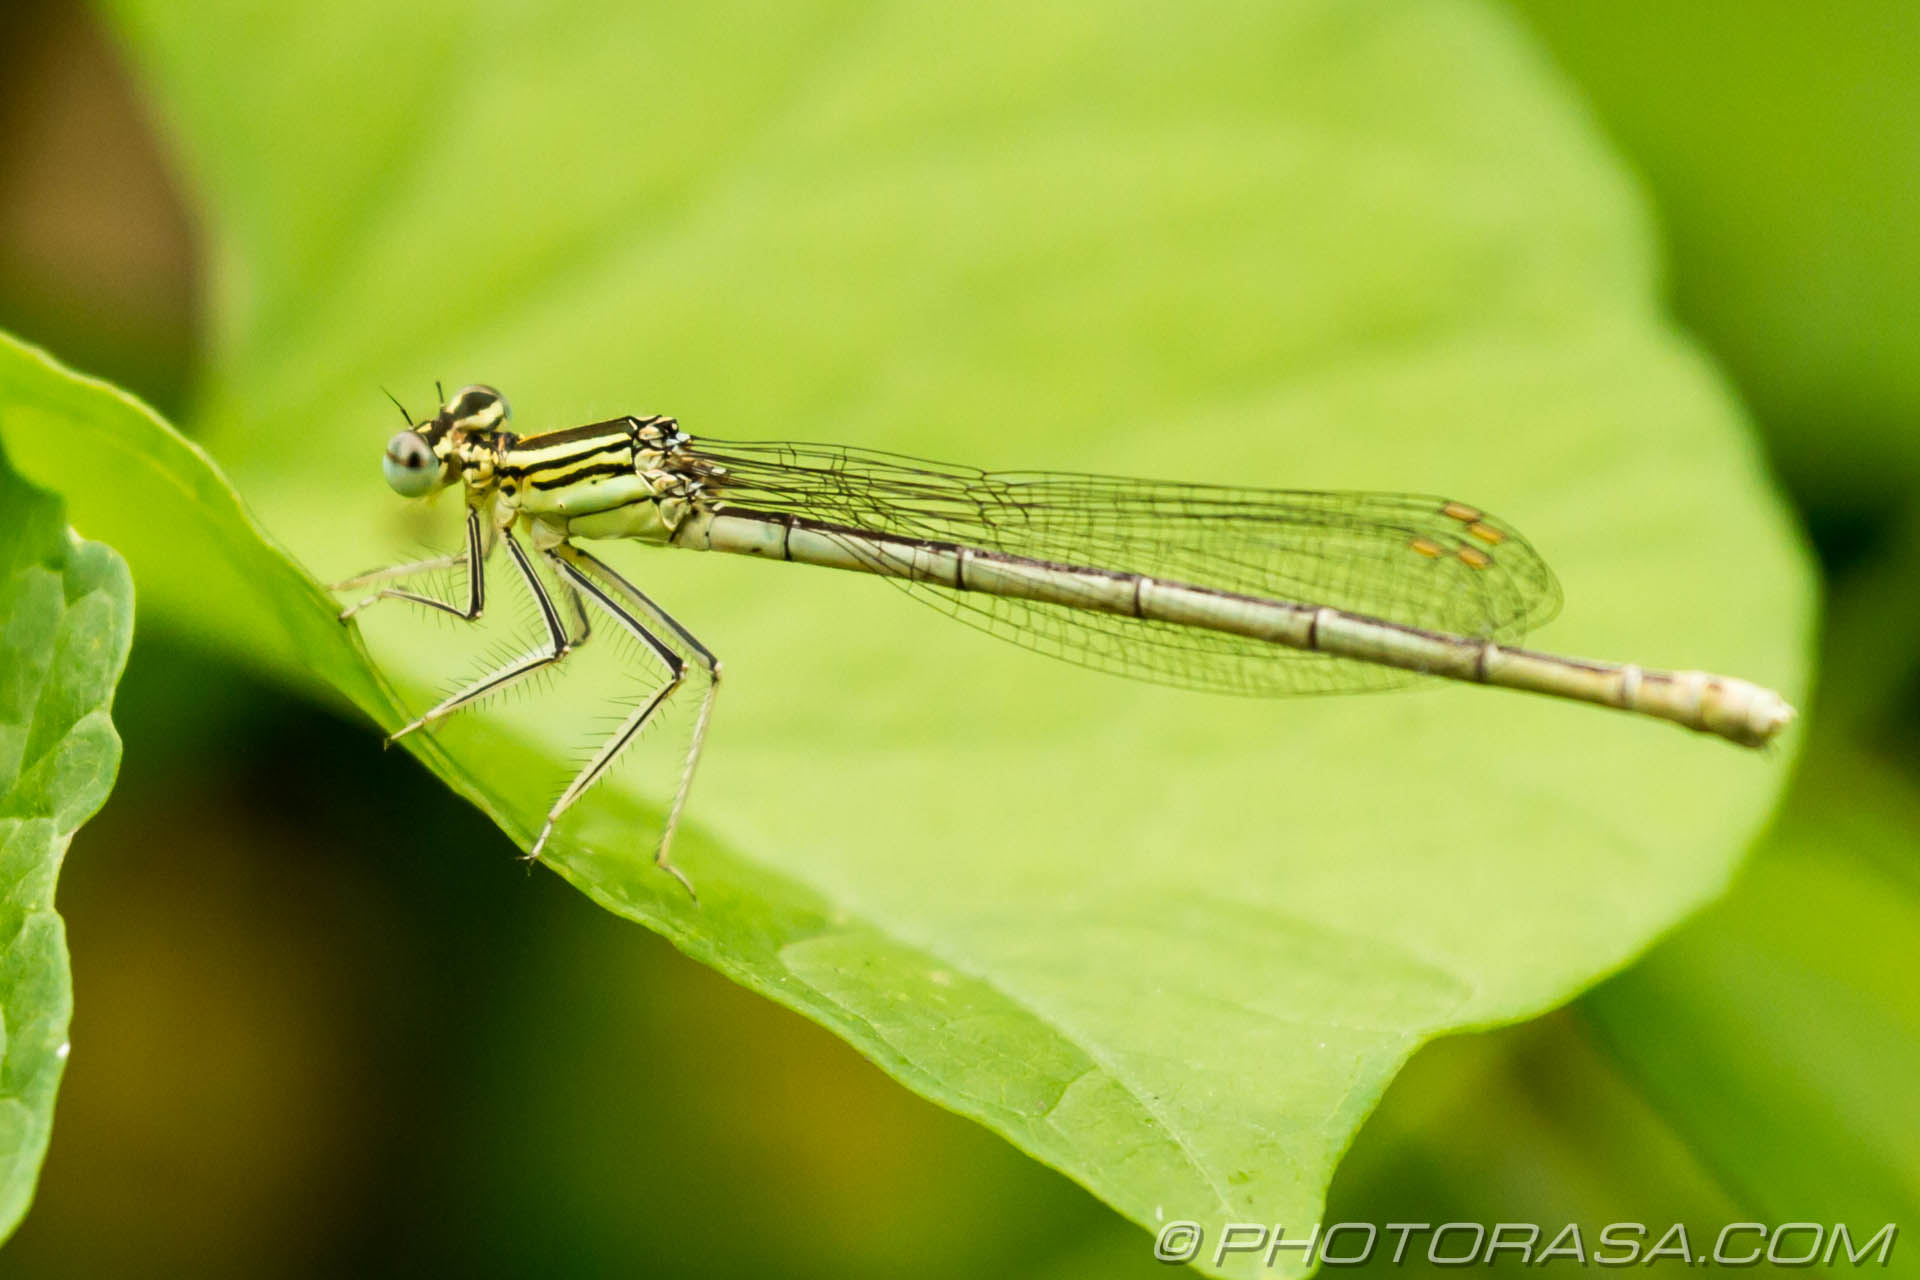 http://photorasa.com/damselflies/white-legged-damsel-fly/